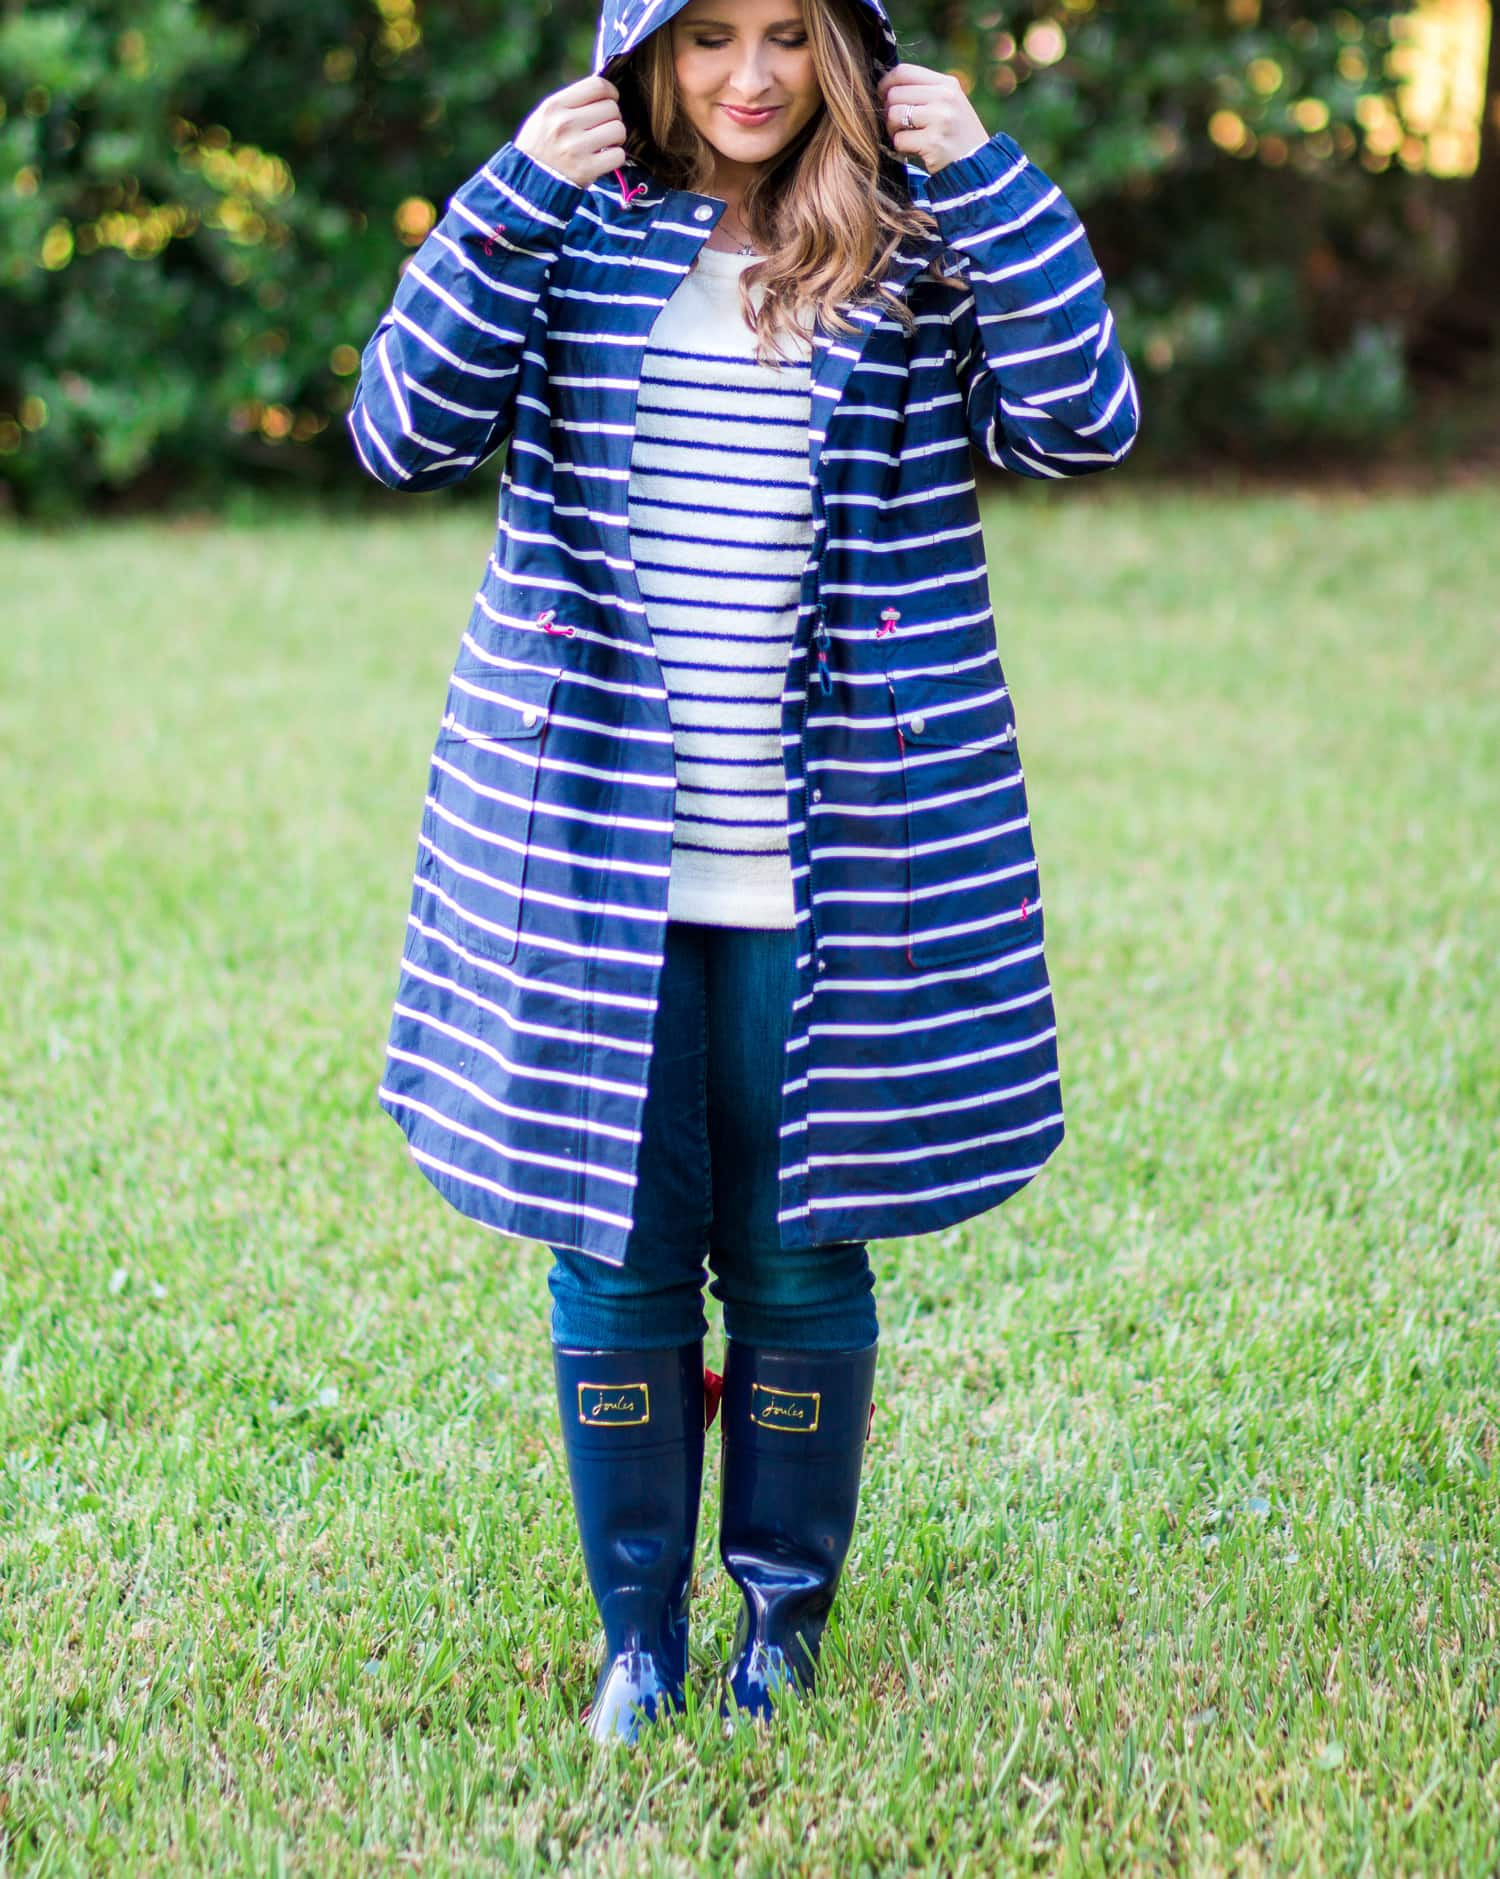 joules-rainboots-bow-striped-raincoat-striped-cozy-sweater-jeans-6539